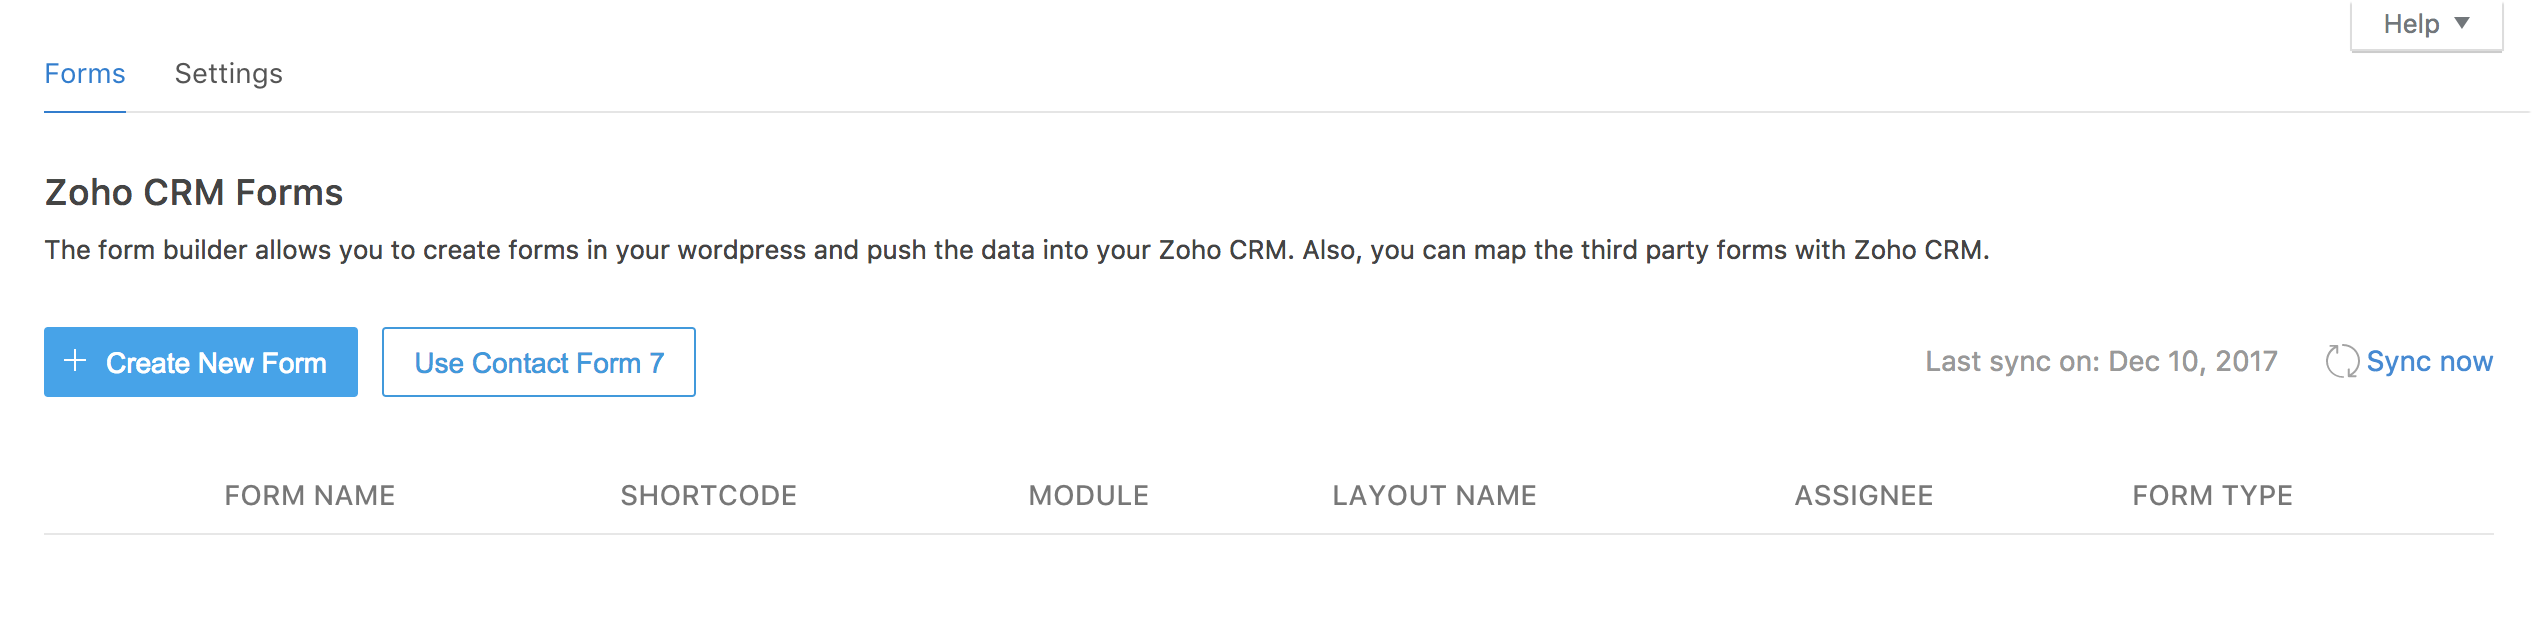 Zoho CRM Forms